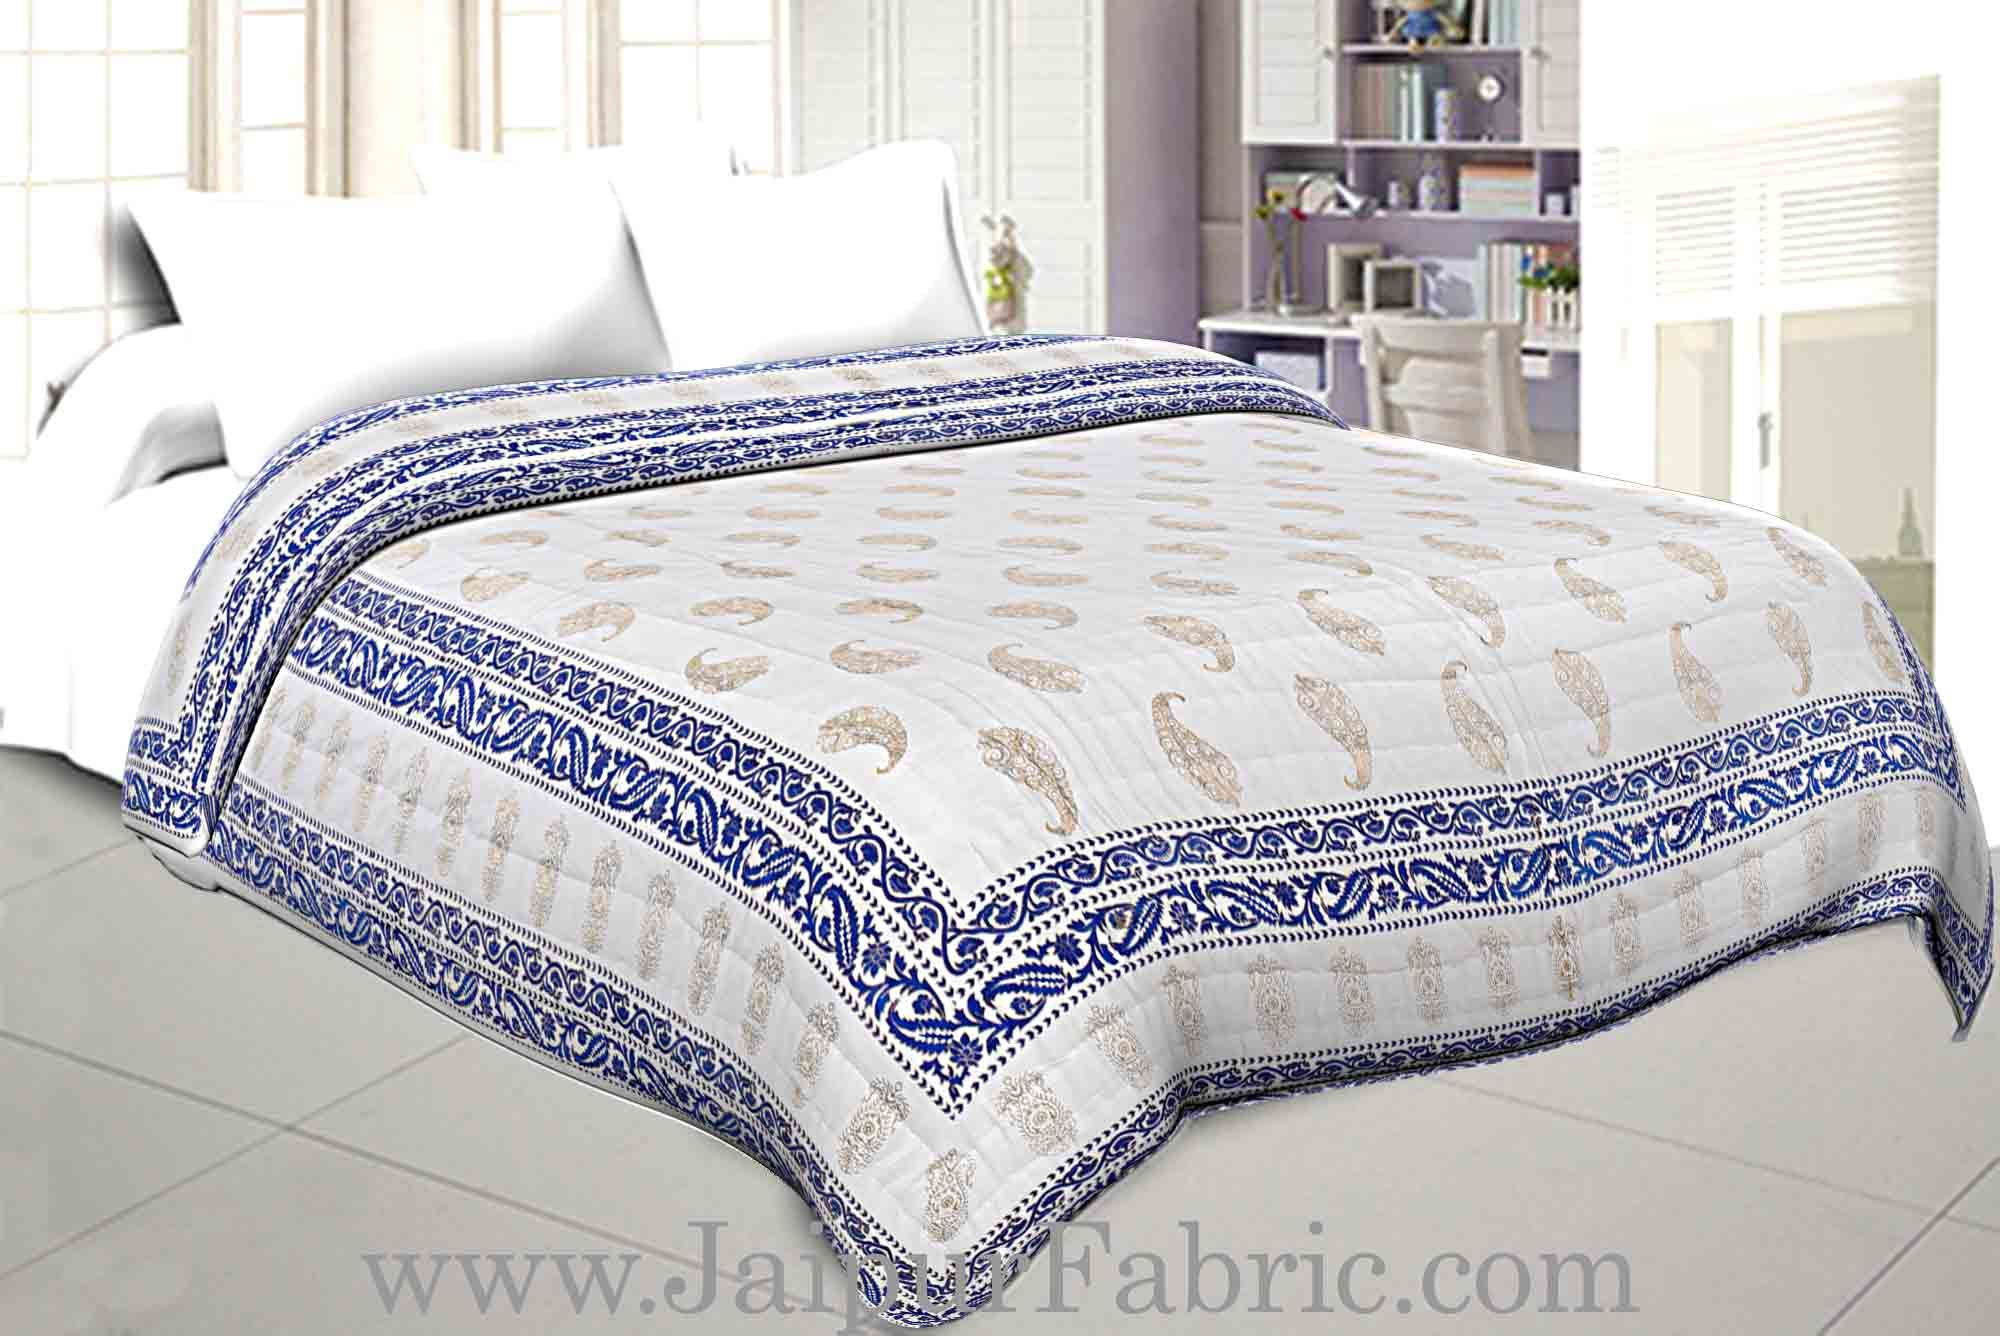 Jaipuri Printed Double Bed Razai Golden Light Blue White base with Paisley pattern